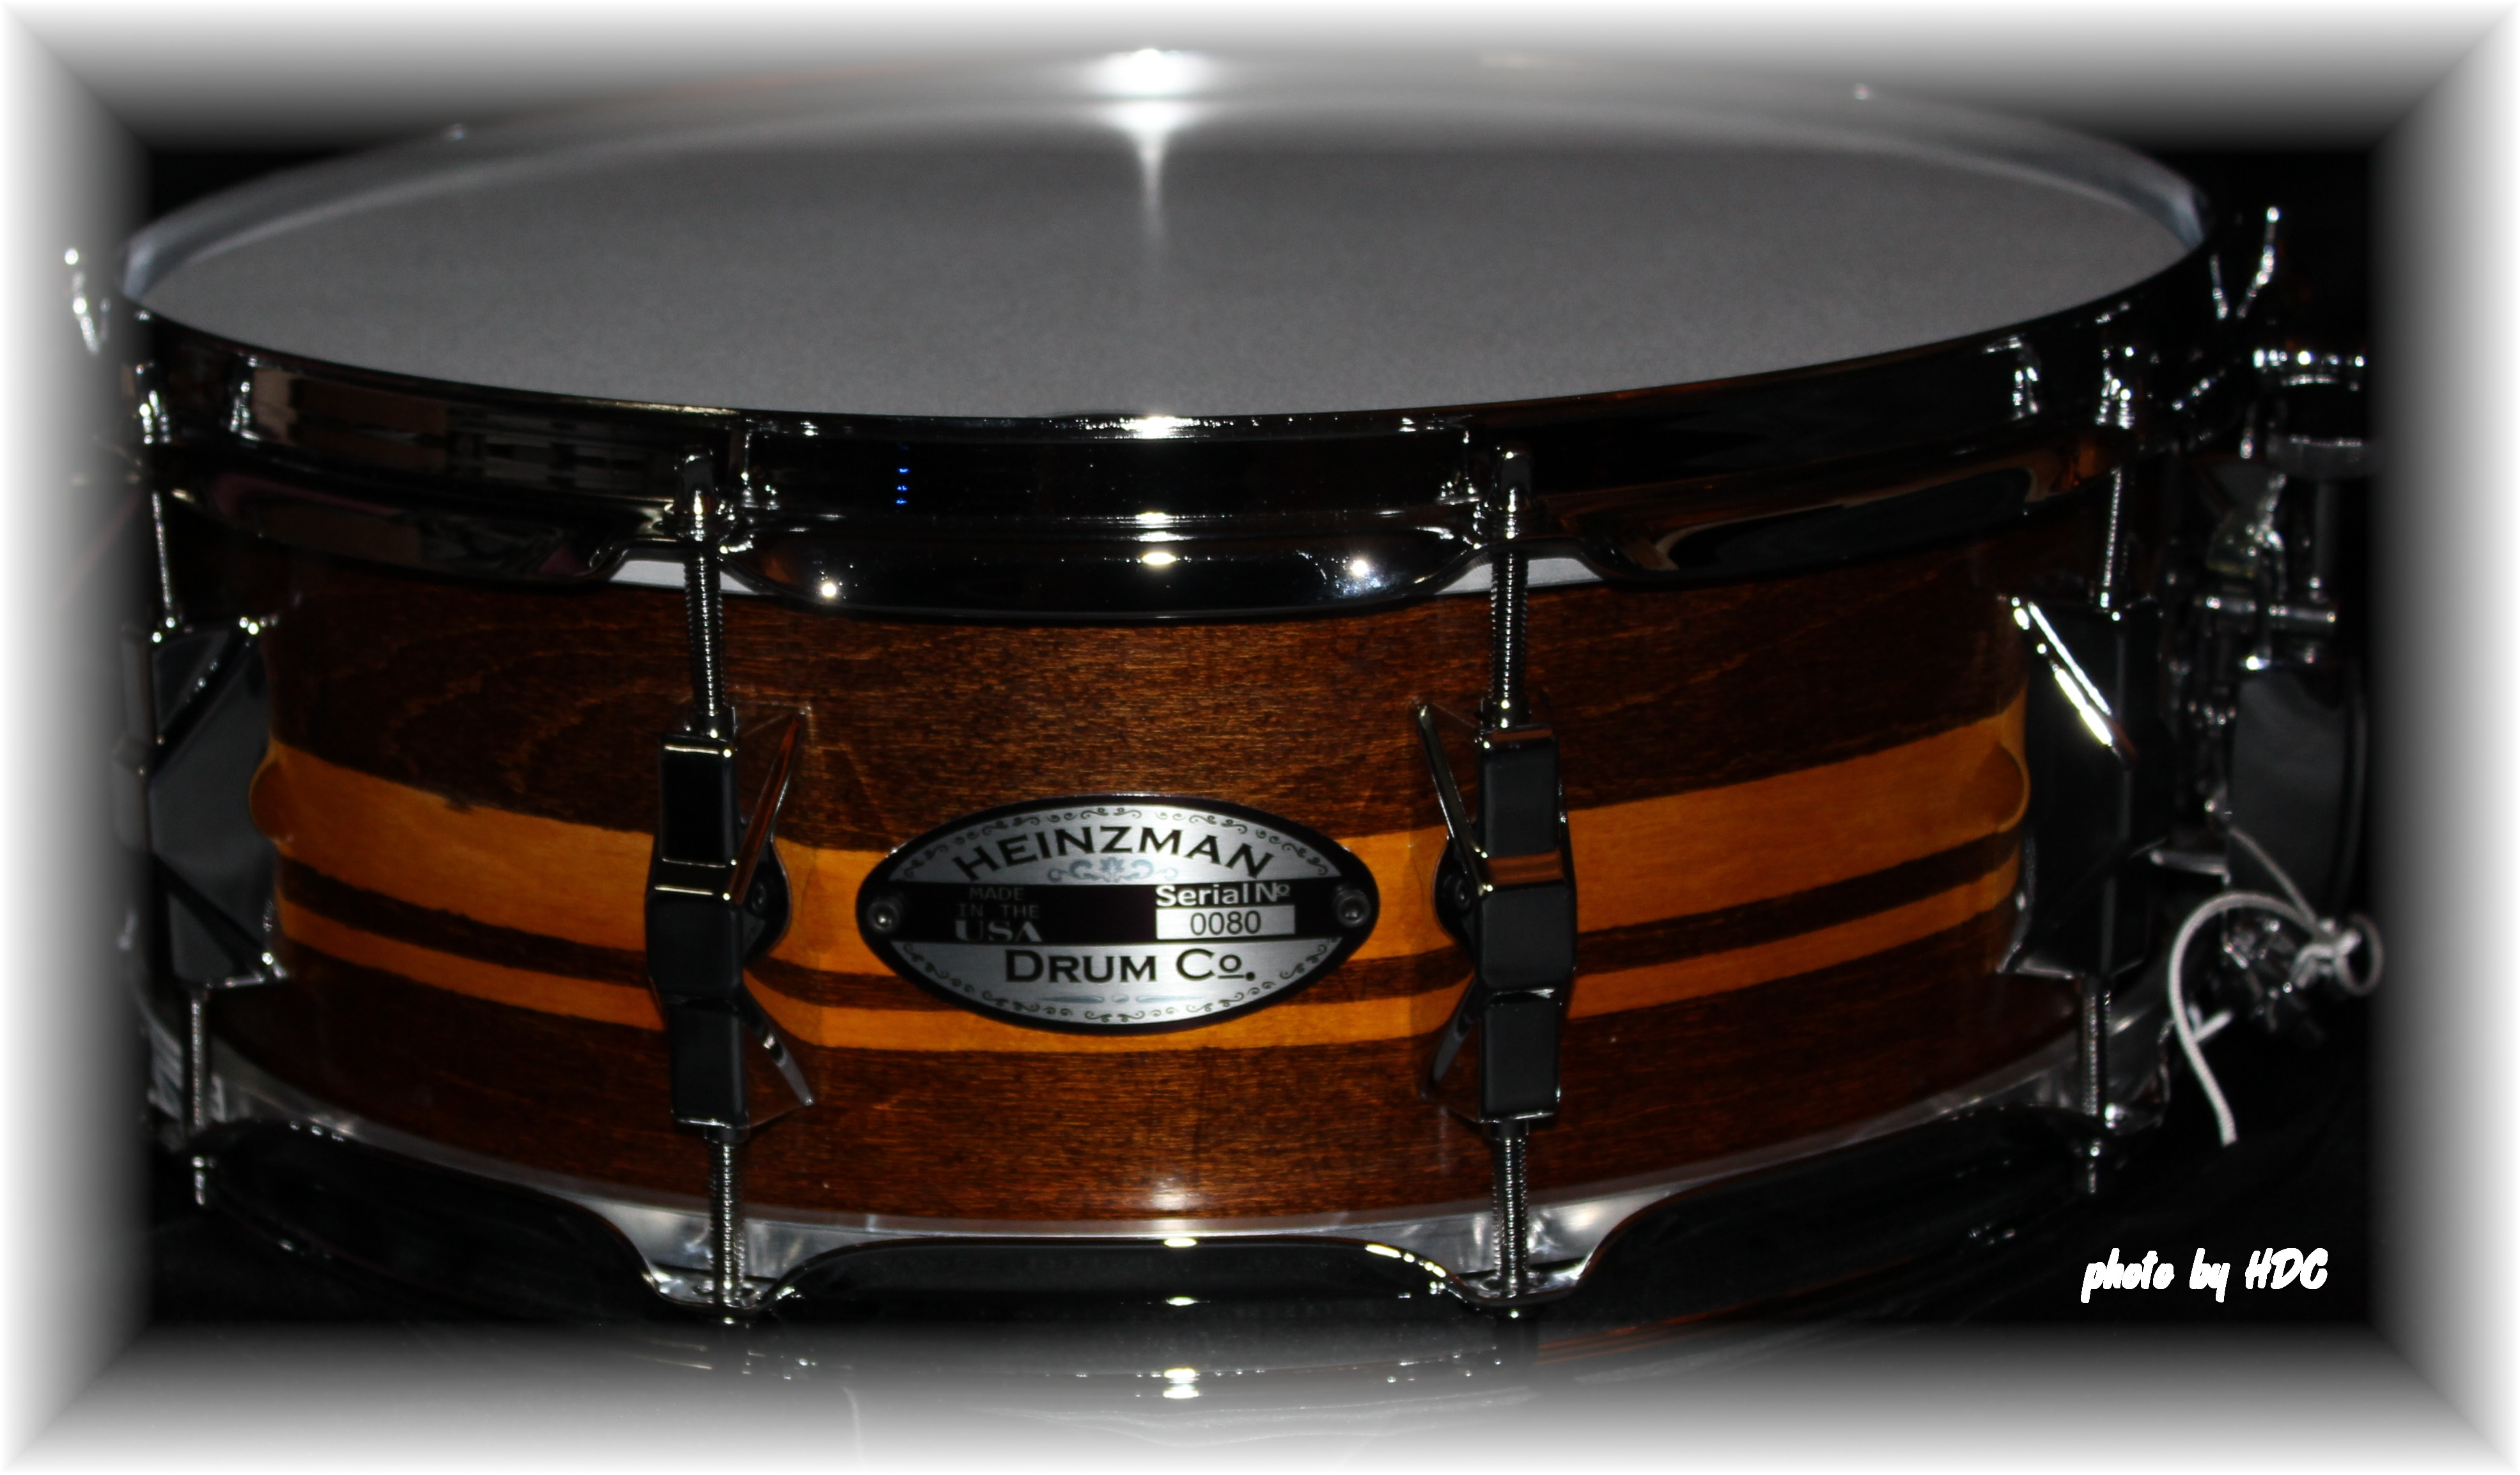 Heinzman Manhatten Custom 5x14""